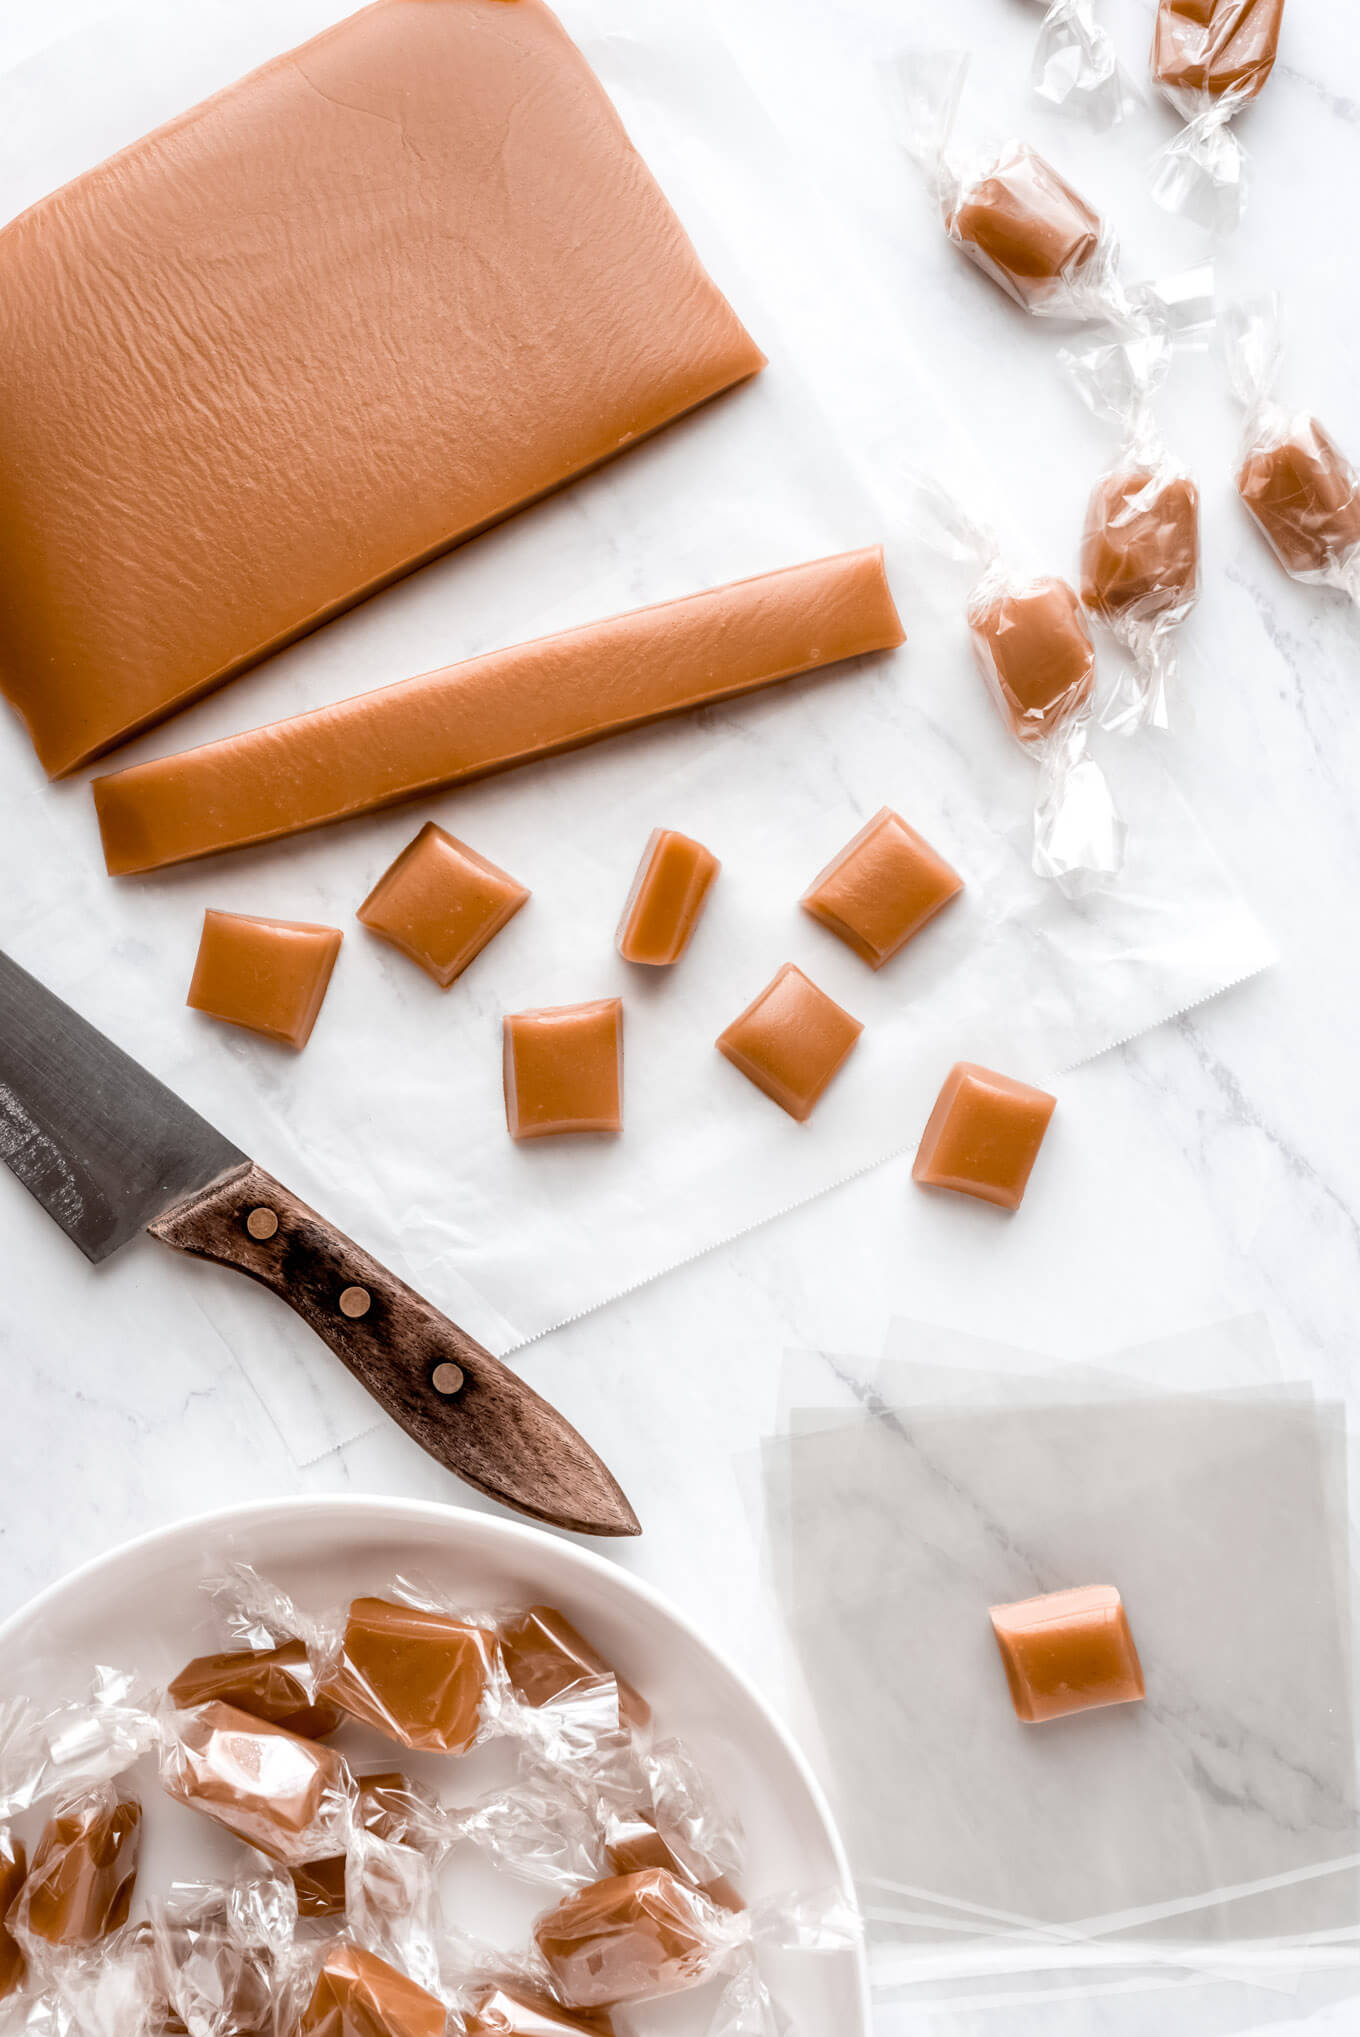 Cutting up and wrapping homemade caramels.